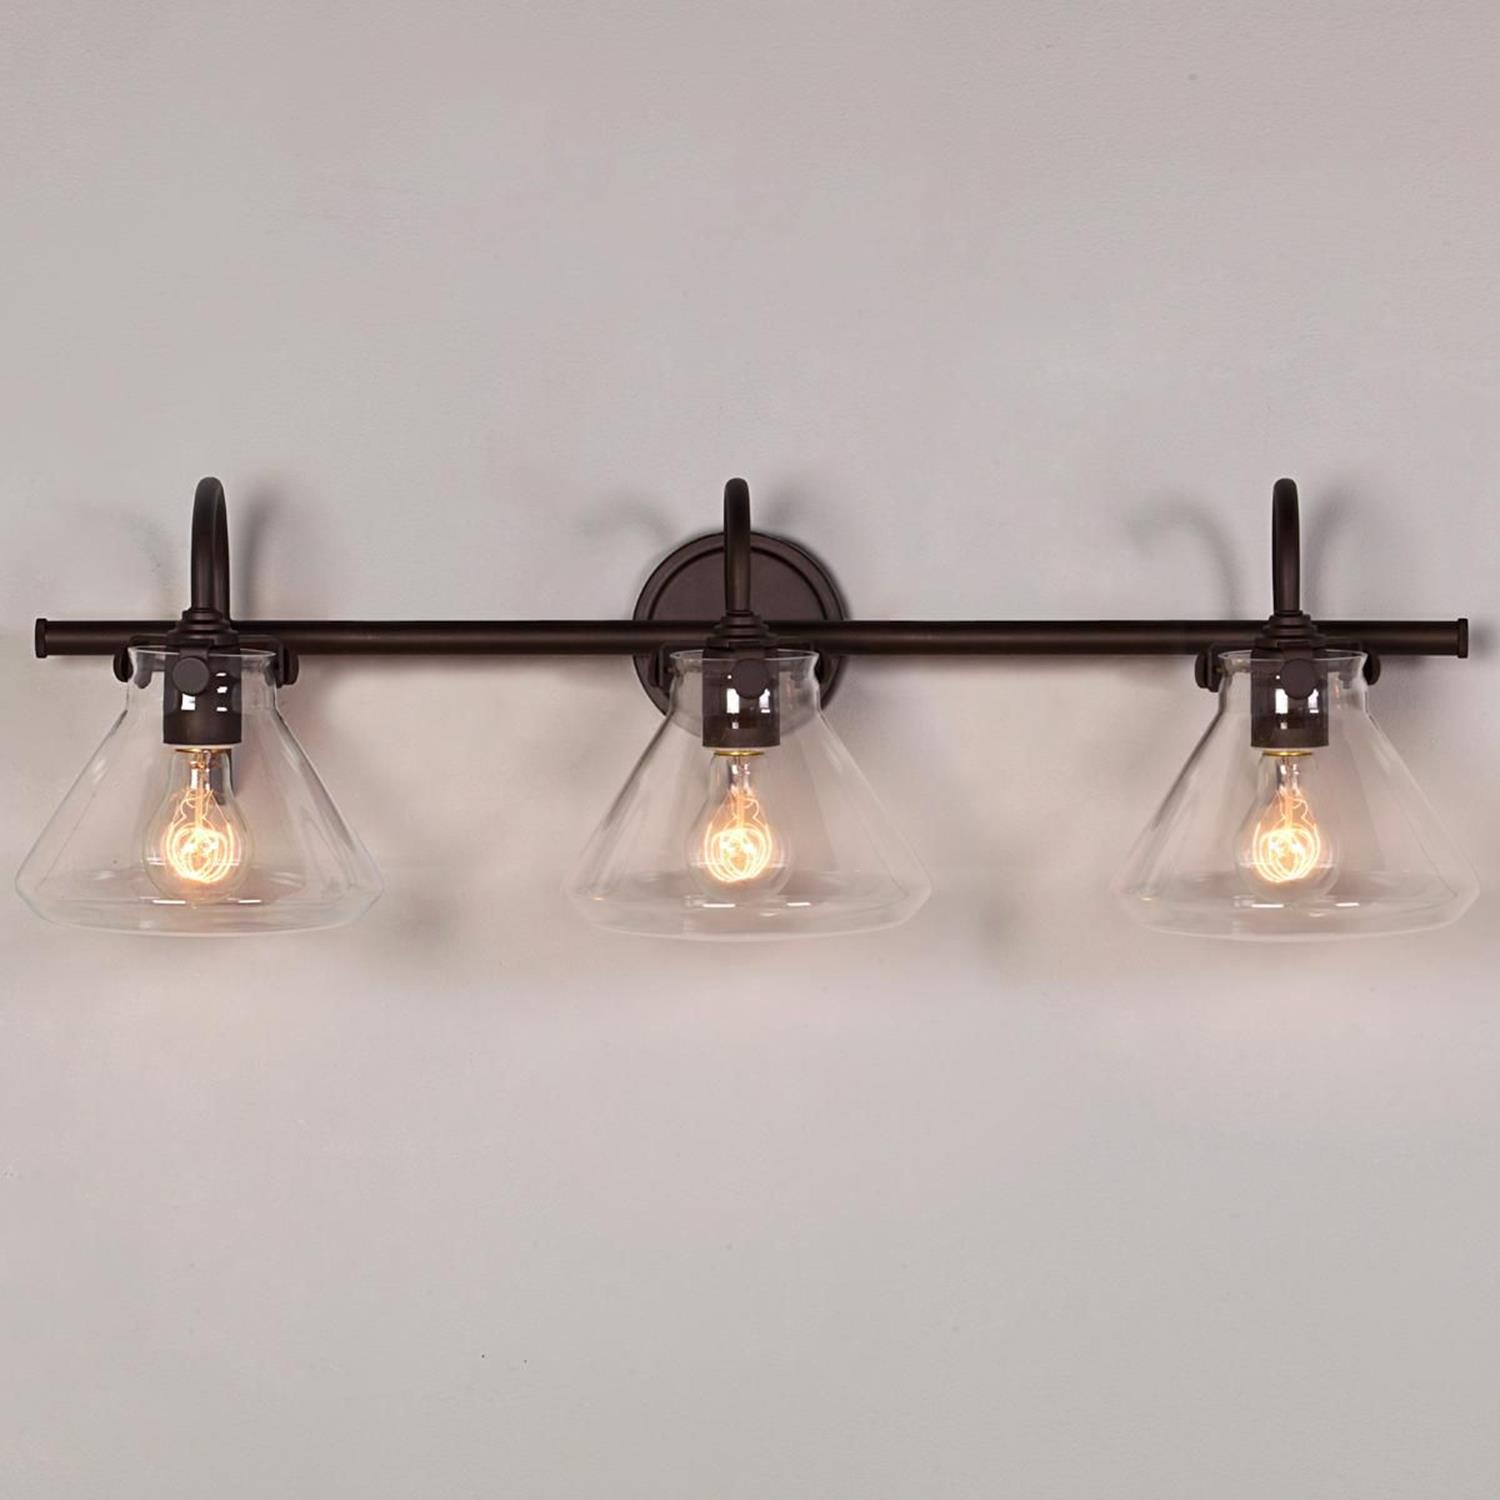 Farmhouse Bathroom Light Fixtures Ideas 3 - DecoRelated